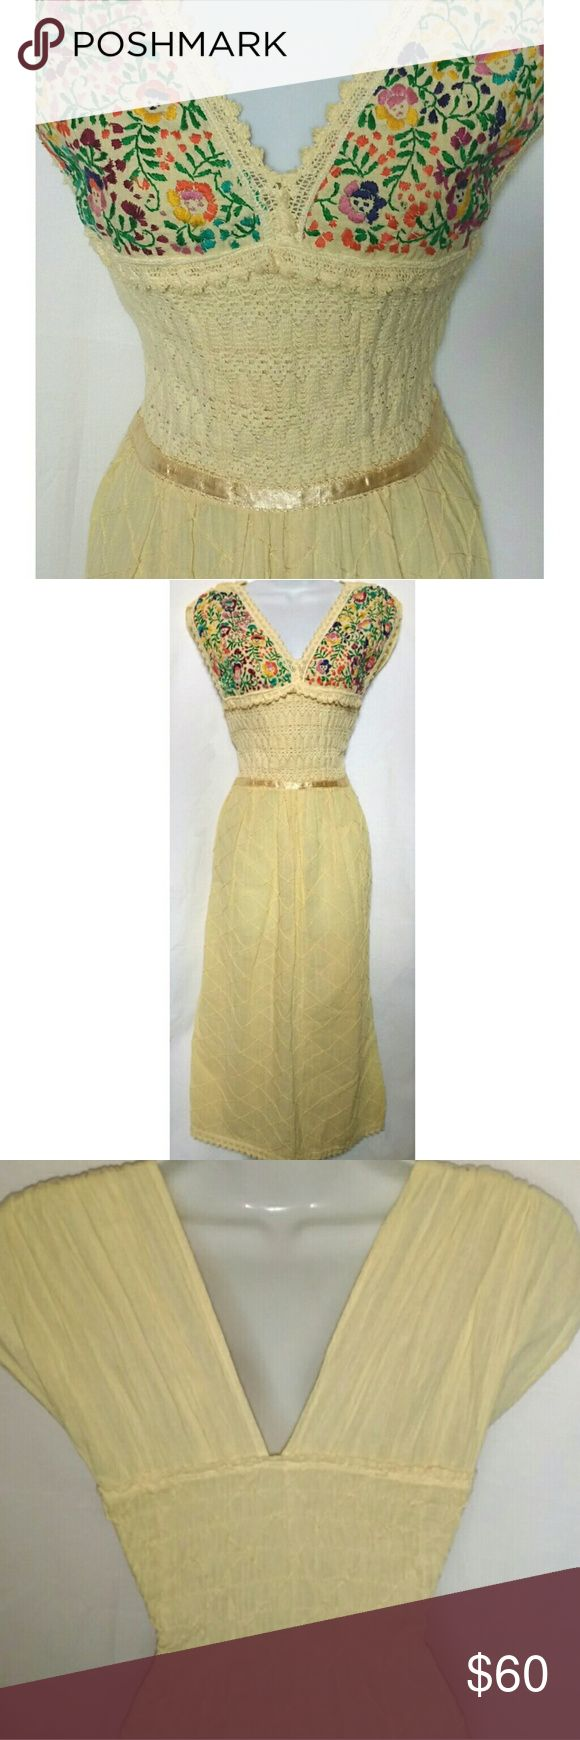 """Vintage Embroidered Sundress Perfect summer festival dress! 100% cotton. Hand stitched rainbow floral pattern on bodice. Crochet design at waist and lace trim. V cut at neck and back. The back has elastic ruching so it's easy to slip on and off. Skirt is slightly see through so I'd recommend wearing a slip or nude leggings underneath. There are so many lovely little details in this piece. Excellent condition, no flaws.  Measurements lying flat- 46"""" long shoulder to bottom hem 15.5"""" armpit to…"""